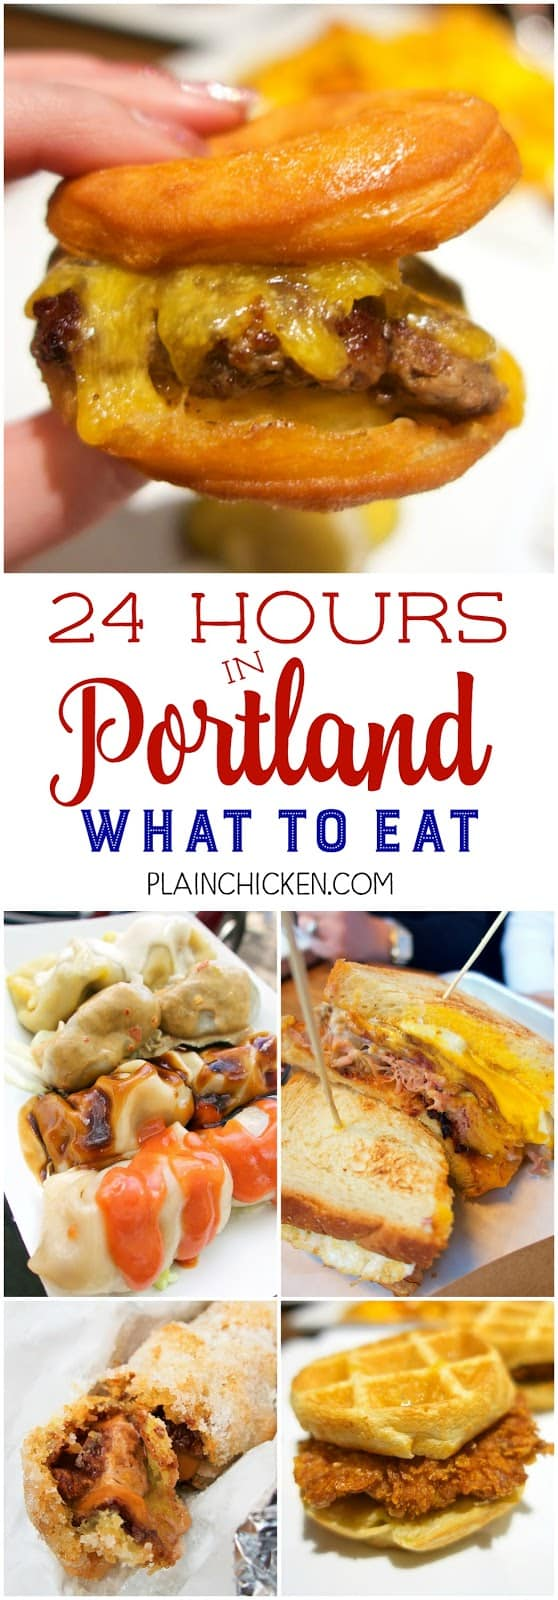 24 hours in Portland Oregon - what to eat! We didn't have a lot of time, but we packed in some AMAZING food! Life changing sandwiches, desserts and a fun time exploring the food cart parks!!